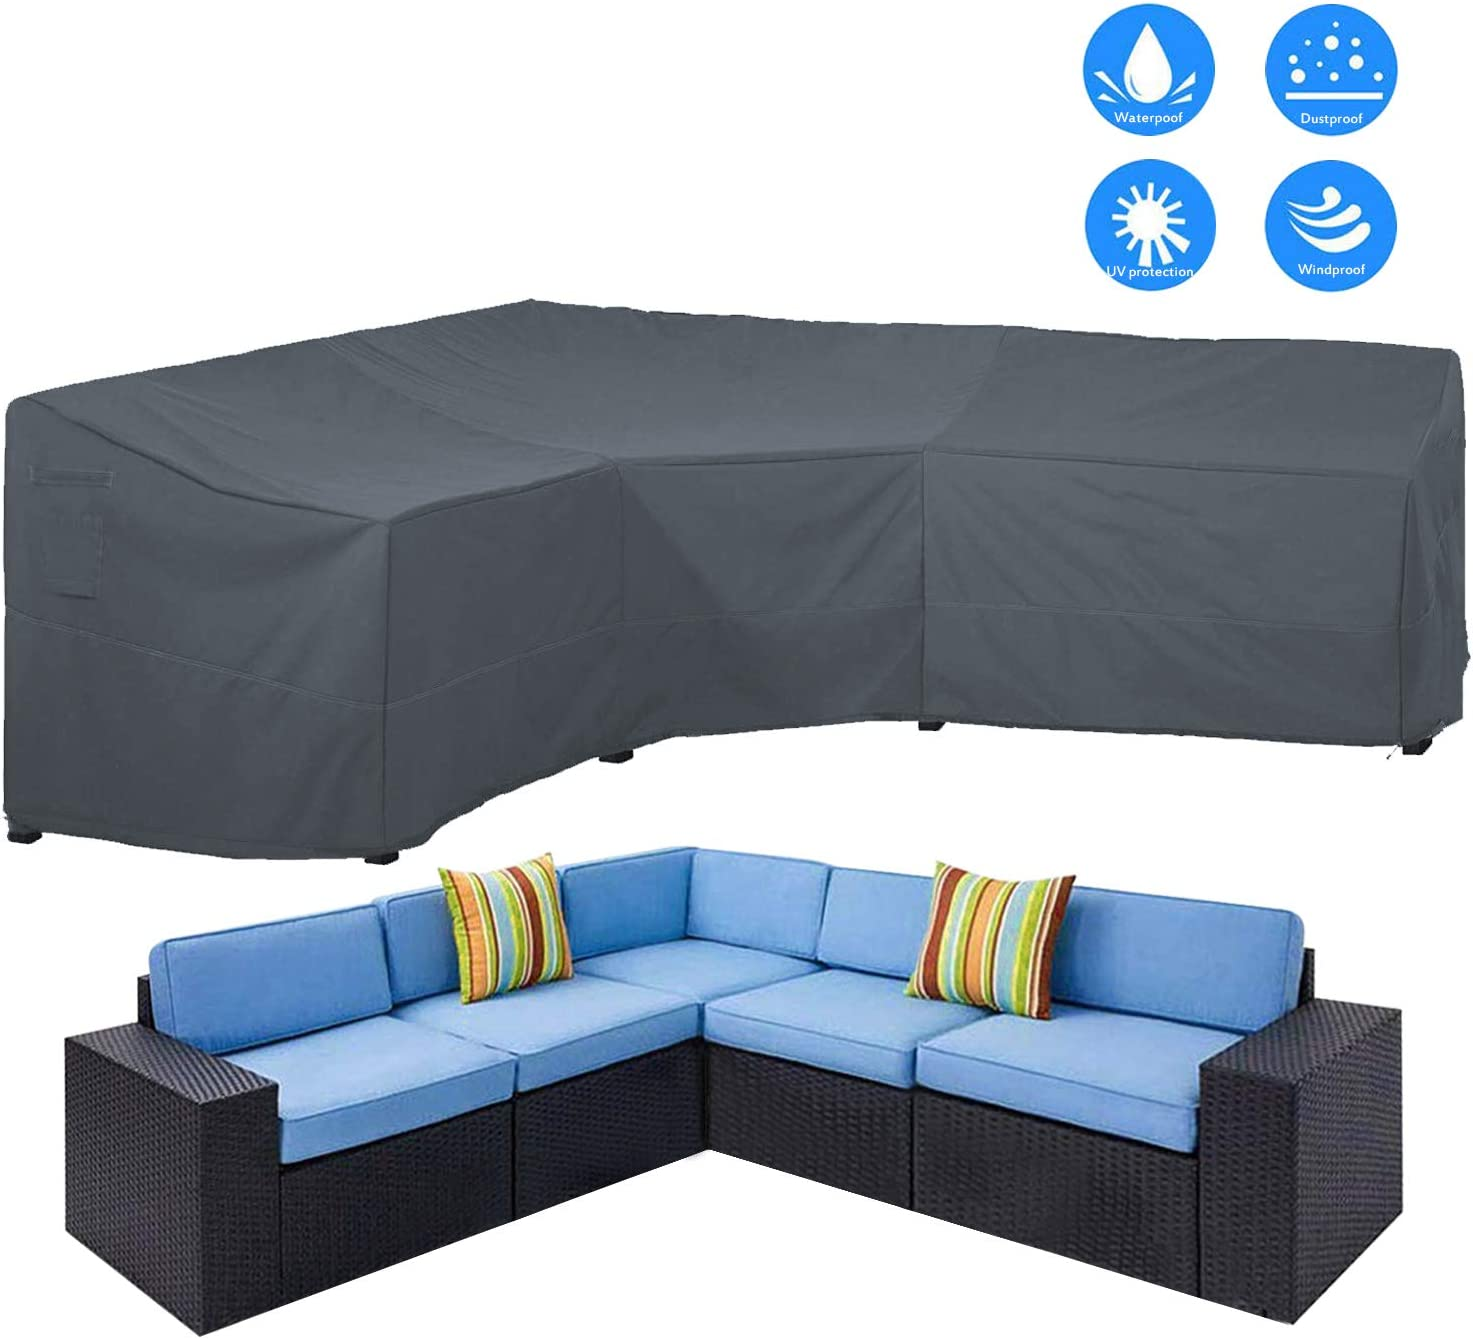 AKEfit Patio Furniture Cover Outdoor V-Shaped Sectional Sofa Cover Premium Waterproof Fabric Garden Couch Protector Grey 100 L x 33.5 D x 31 H